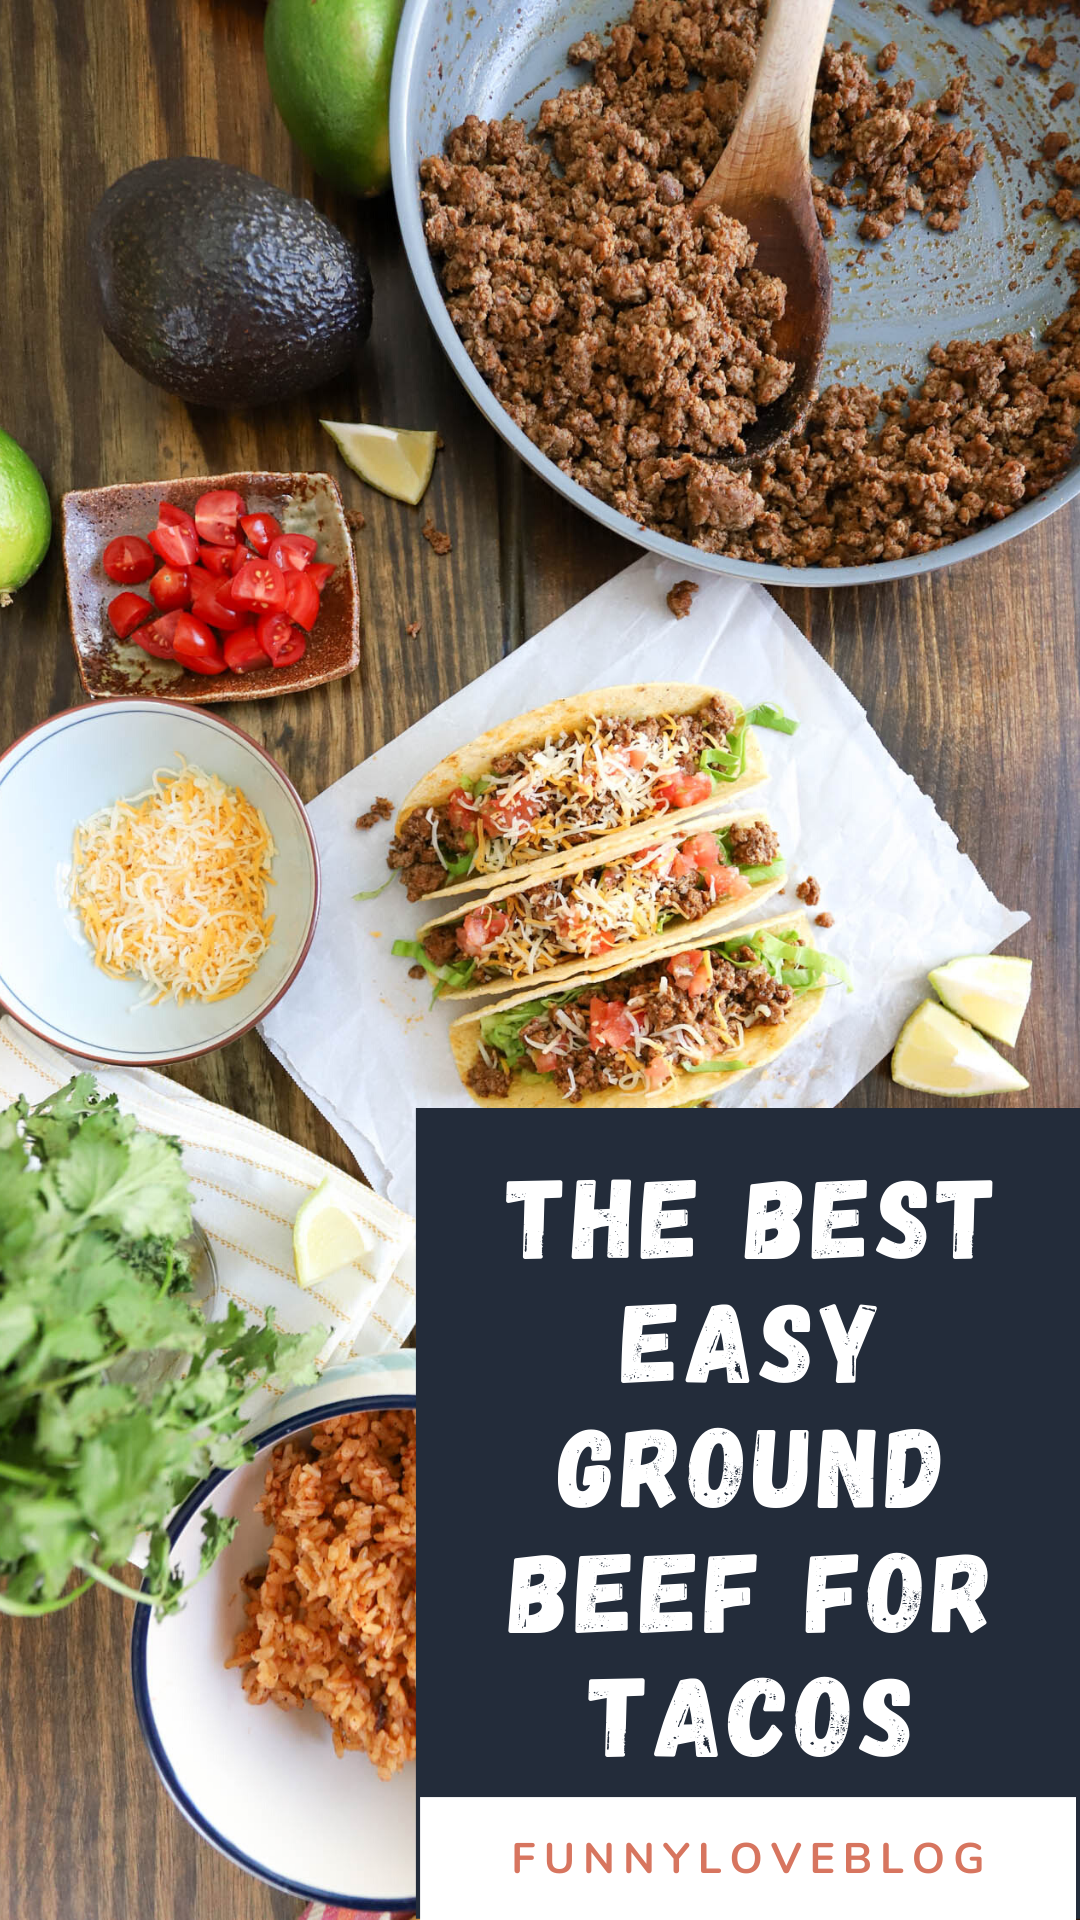 Easy Ground Beef For Tacos Recipe In 2020 Ground Beef Tacos Mexican Food Recipes Easy Healthy Dessert Recipes Easy